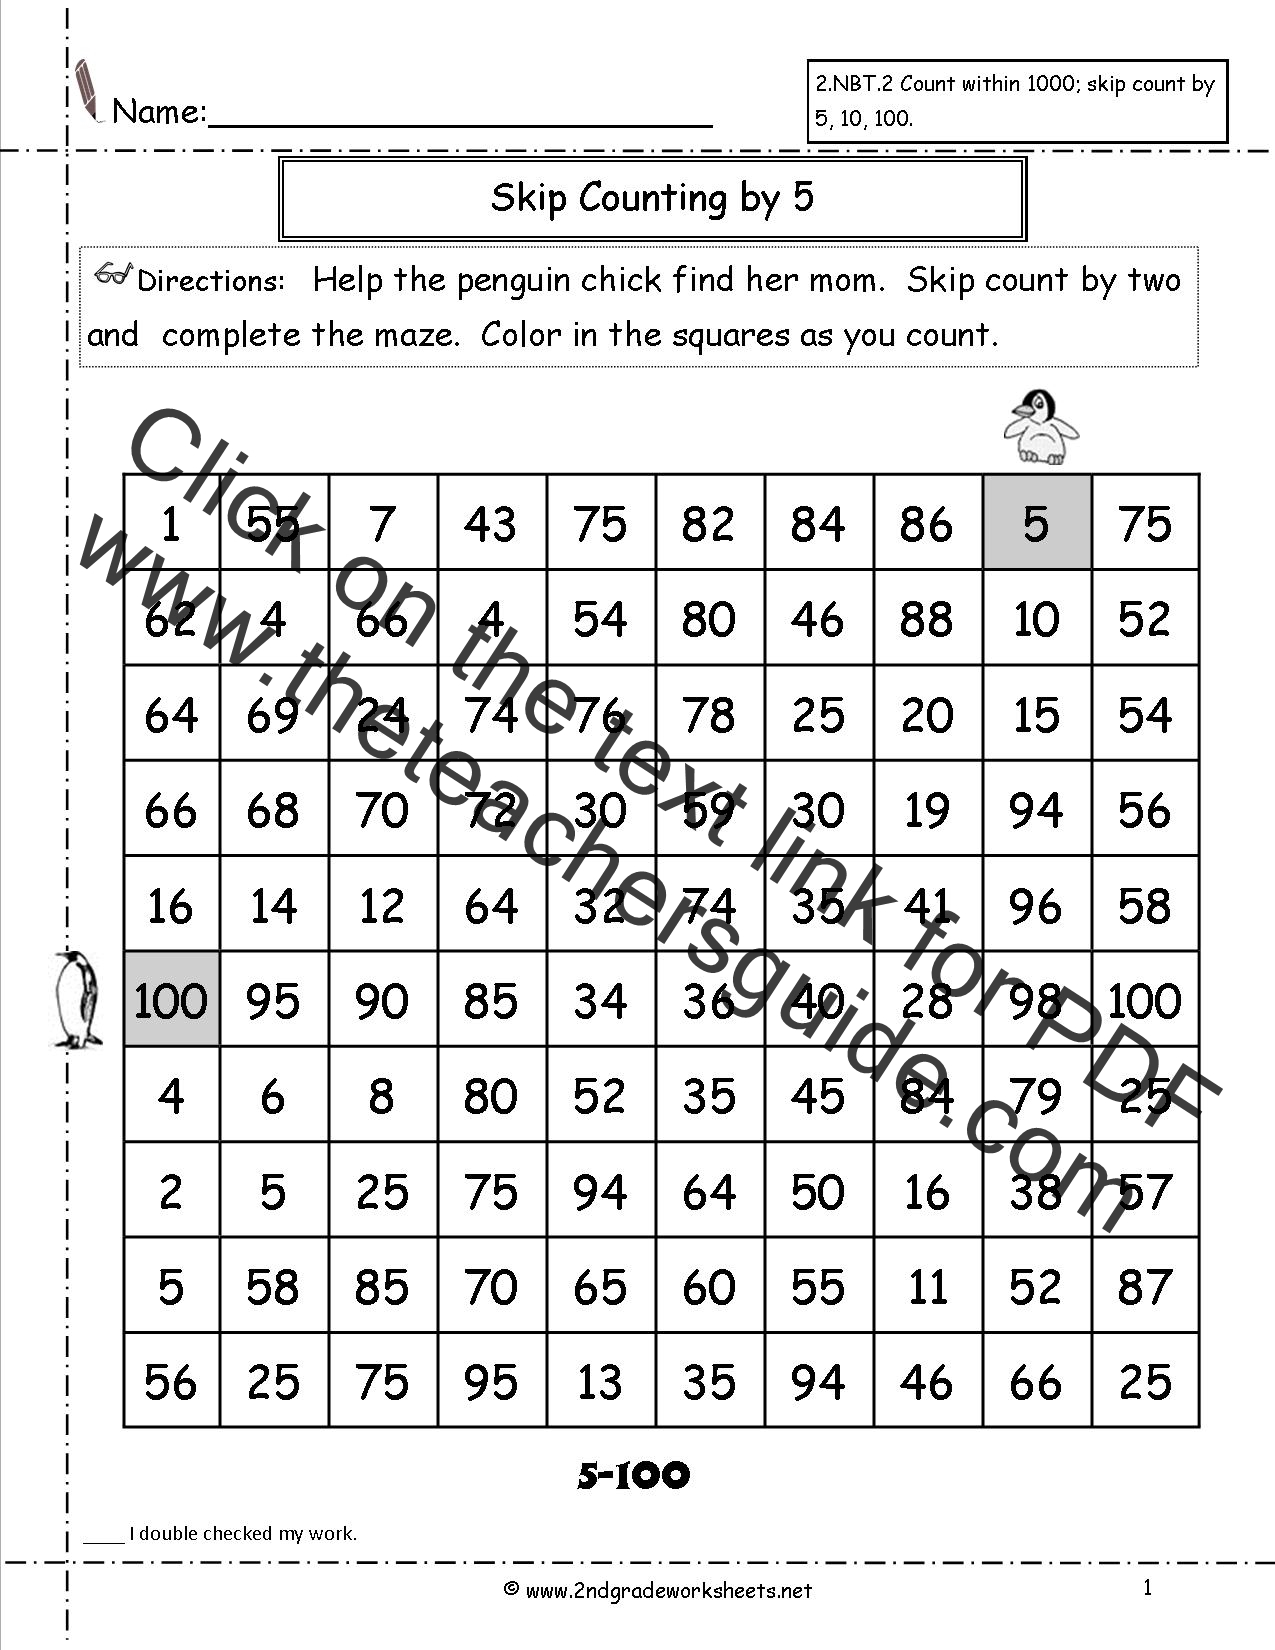 Printables Skip Counting Worksheets free skip counting worksheets by 5 maze